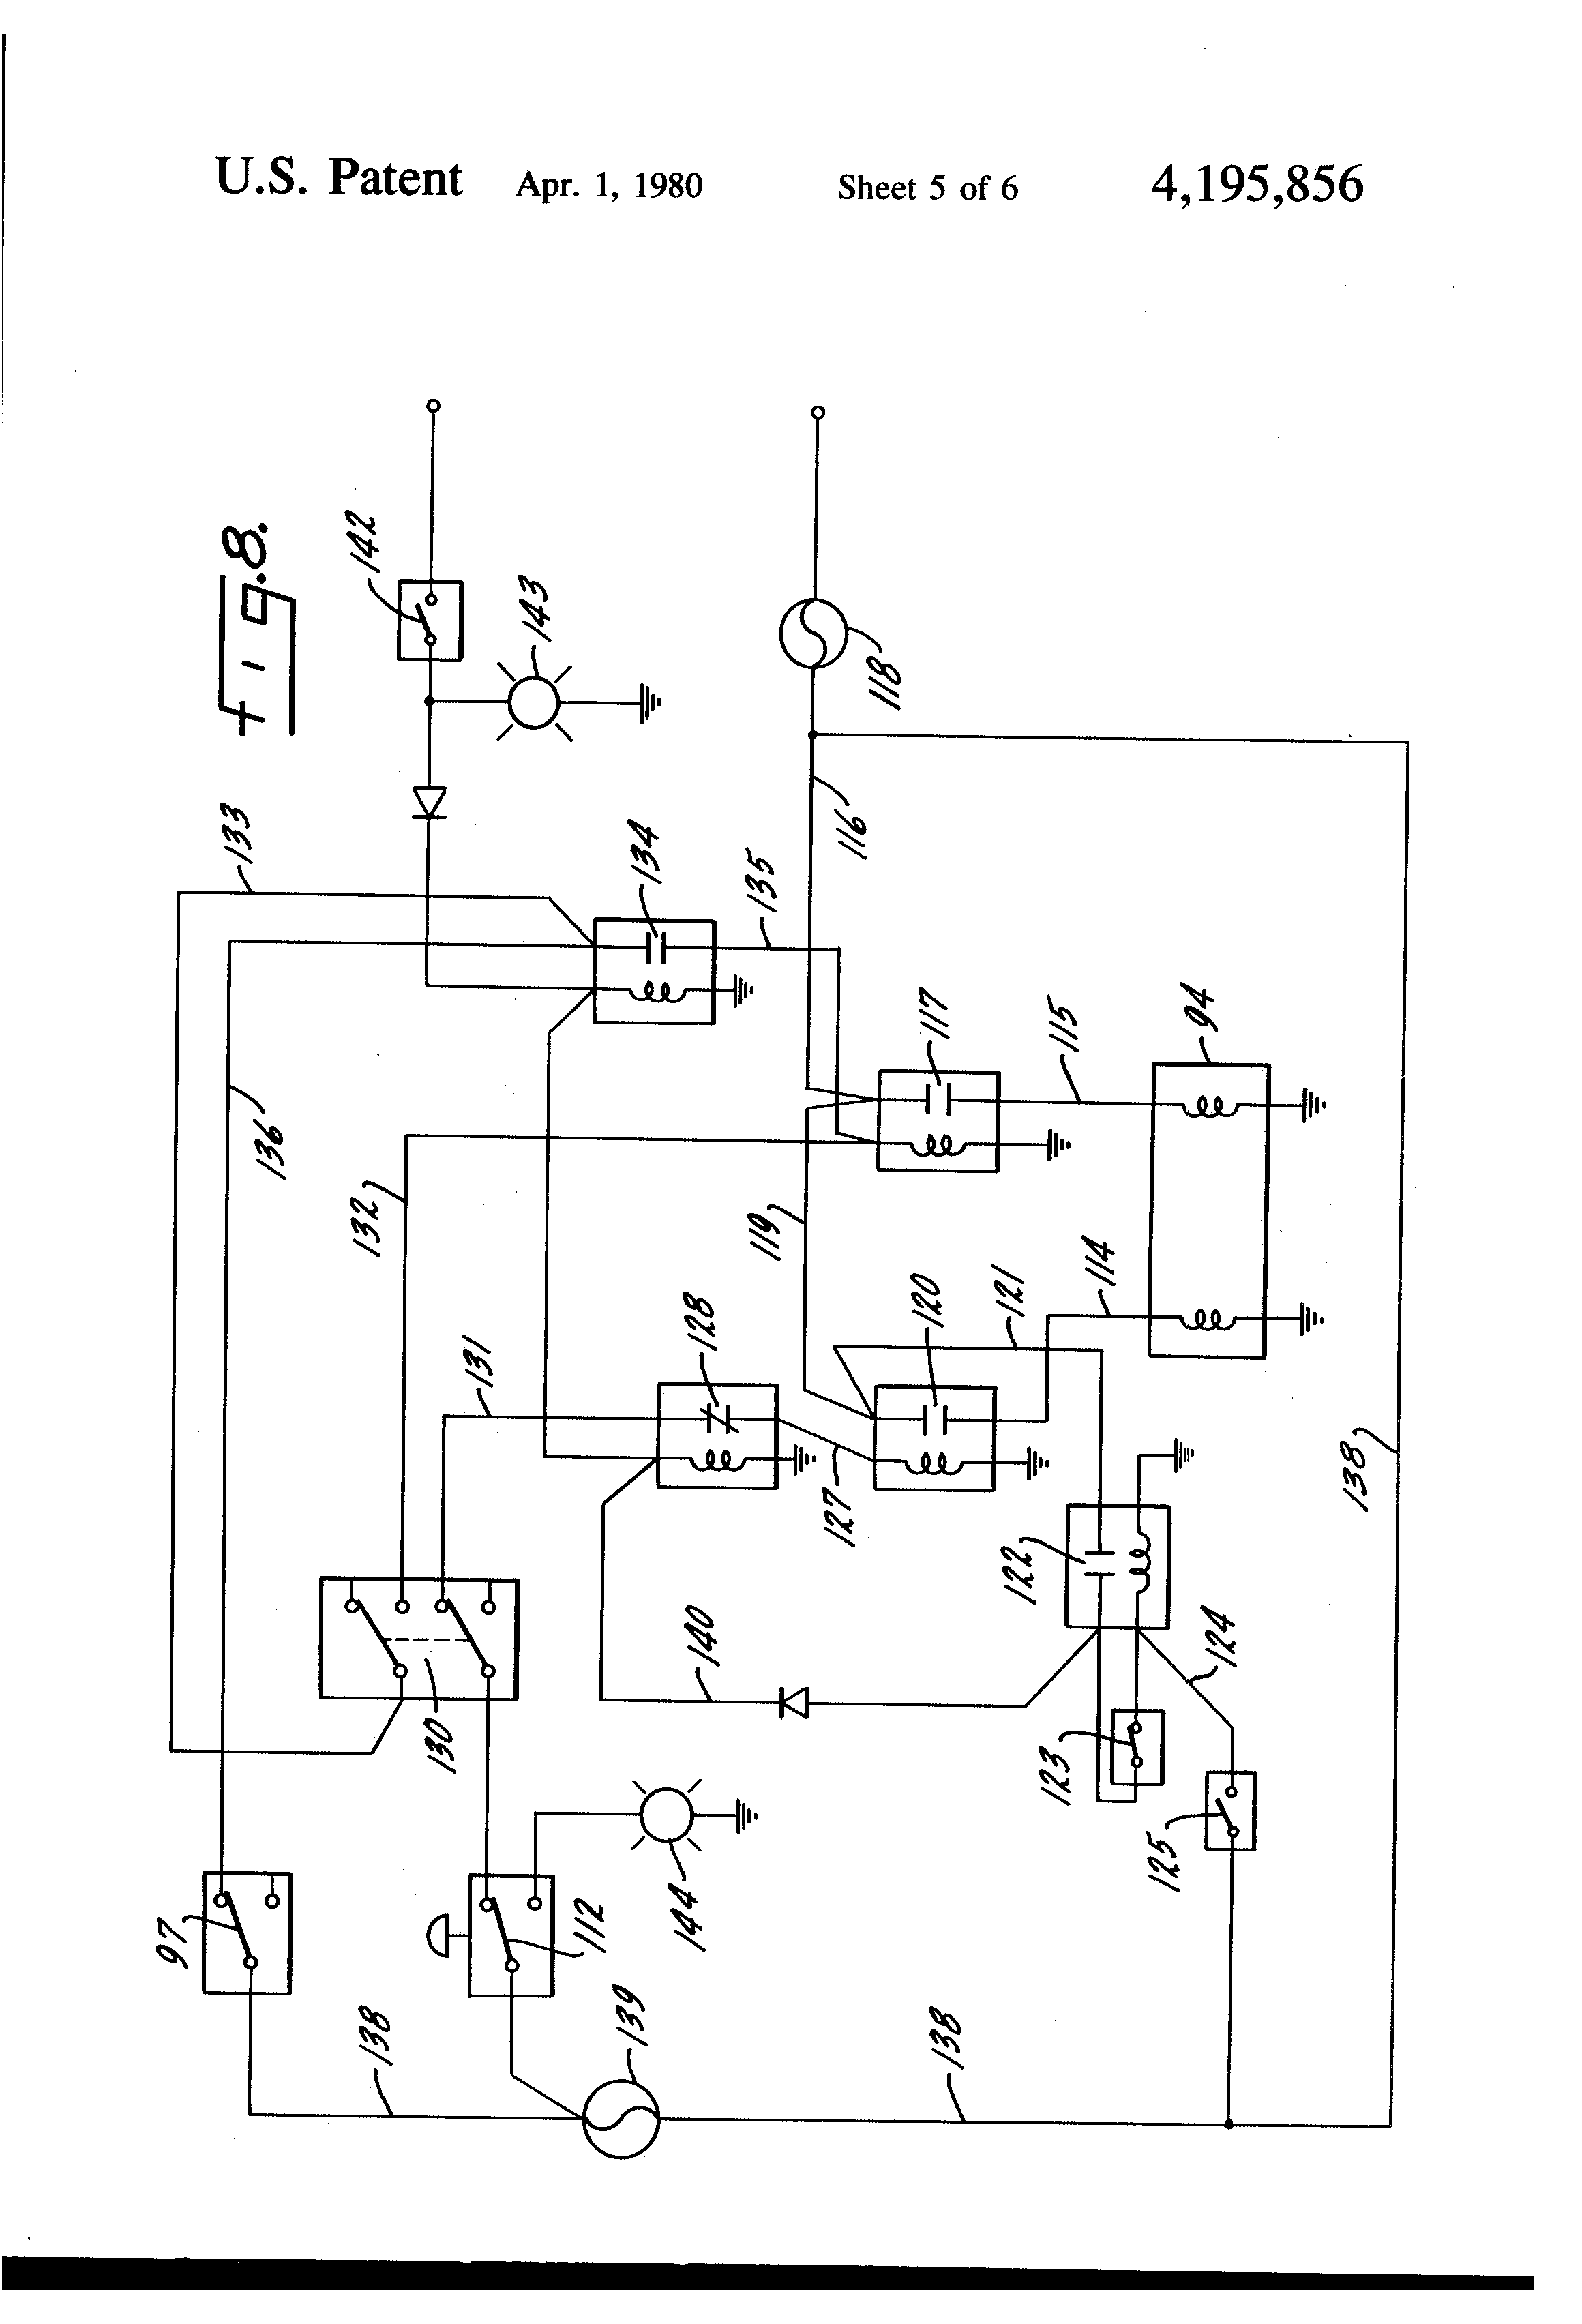 1998 Mcneilus Wiring Diagram - 1999 Ford Cd Player Stereo Wiring for Wiring  Diagram SchematicsWiring Diagram Schematics